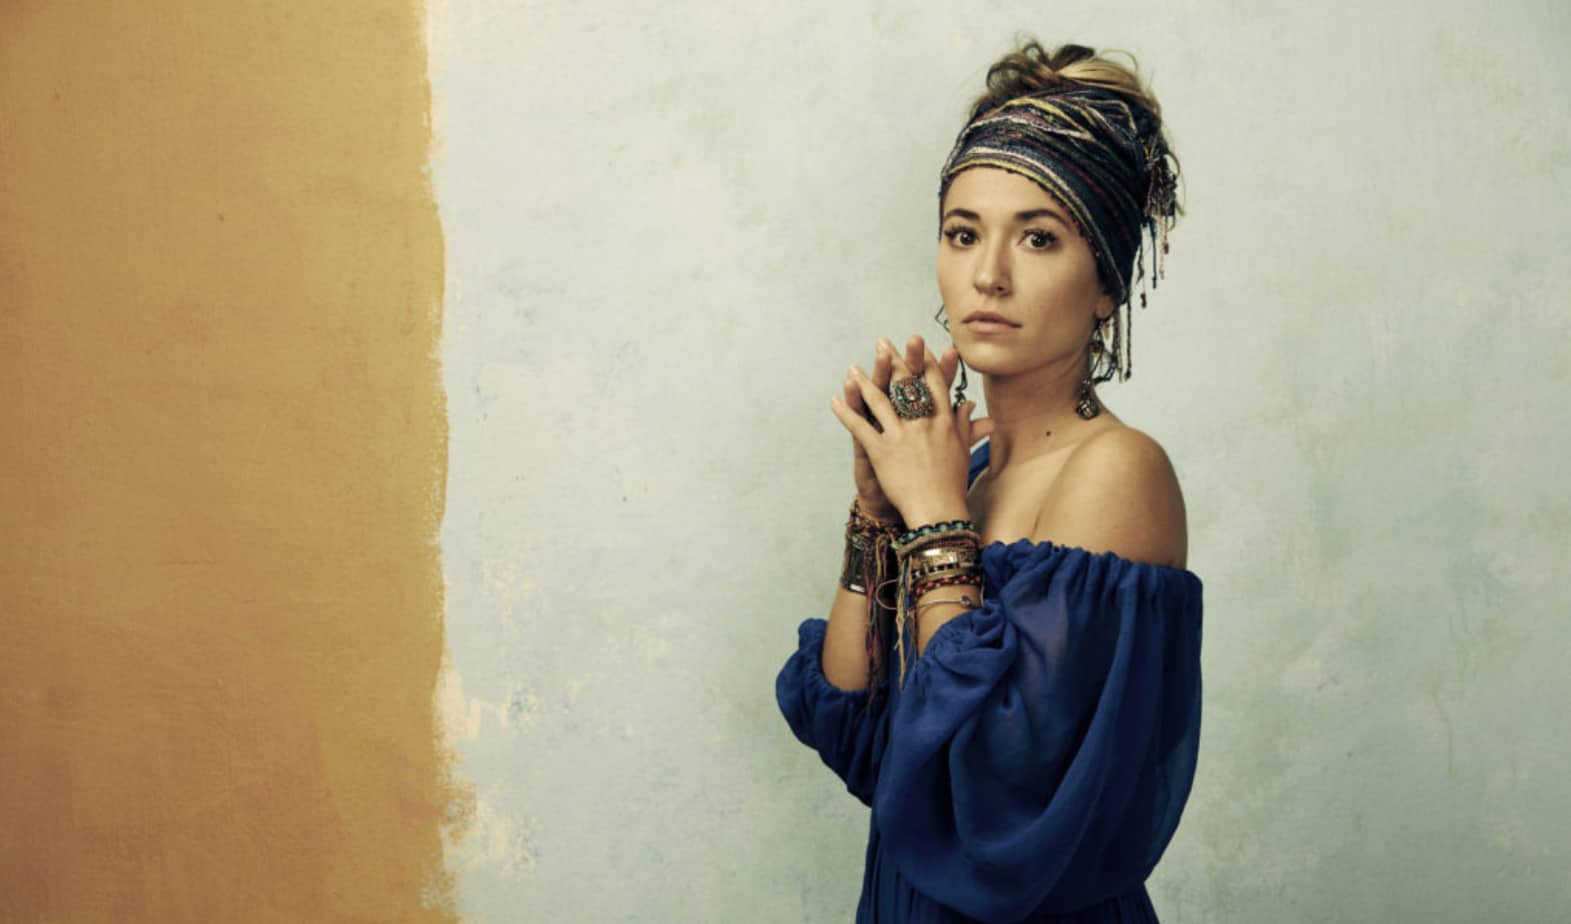 'Hold on to Me' from Lauren Daigle is a cry we all need to make to God